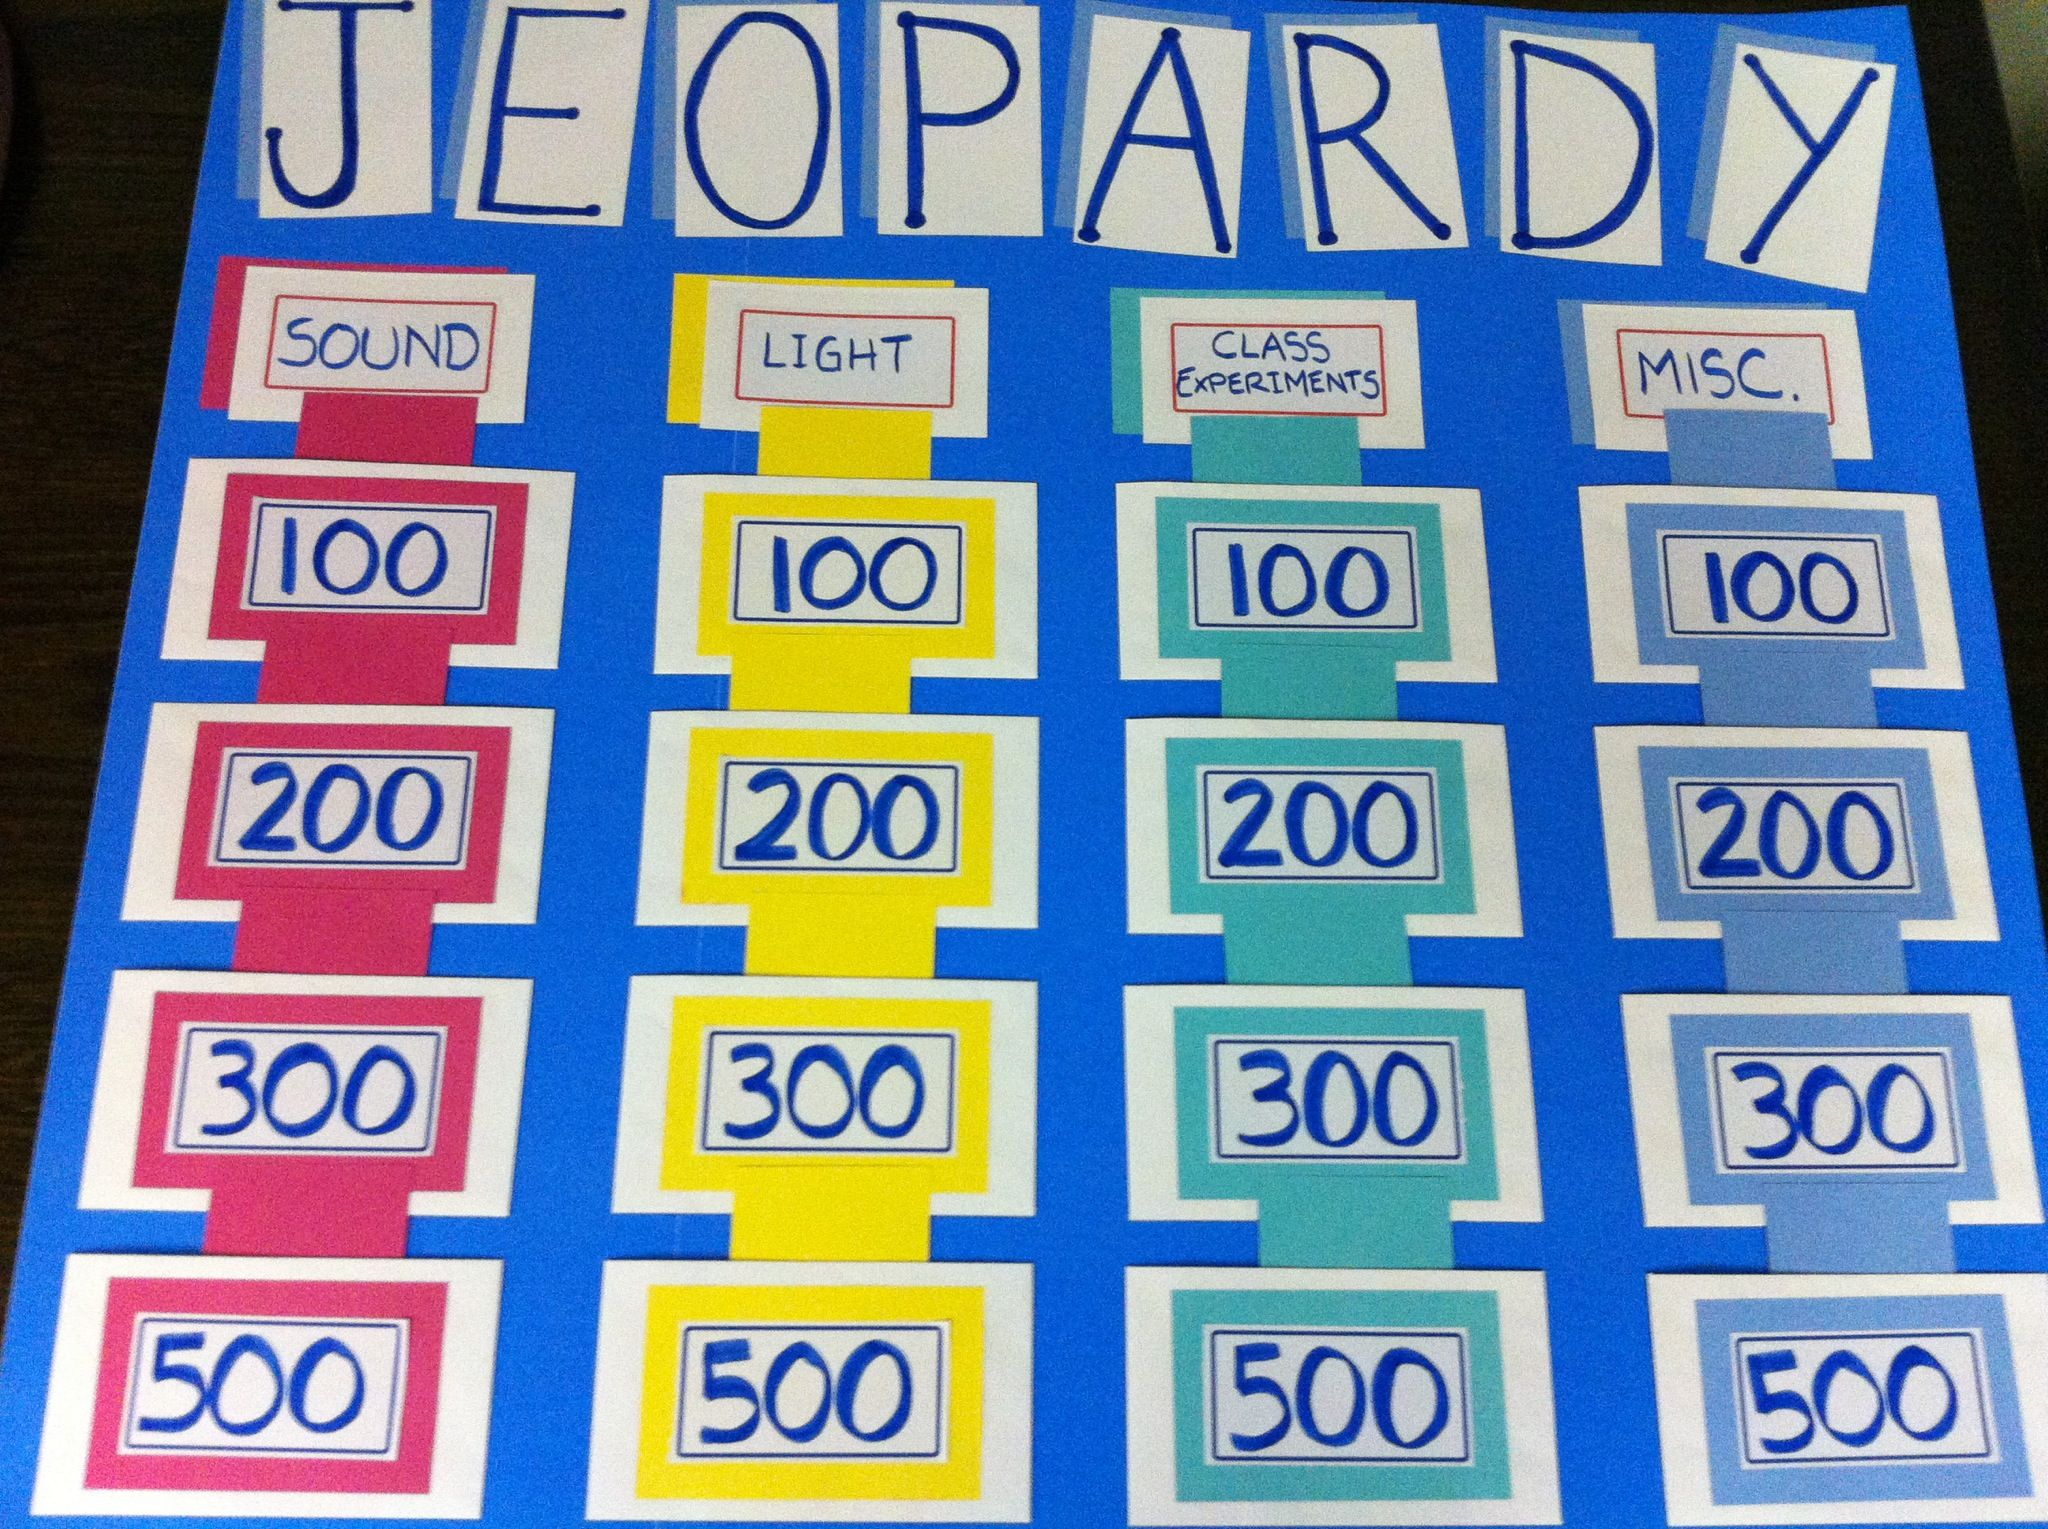 Jeopardy Anchor Chart: made from envelopes, cue cards, bristol board